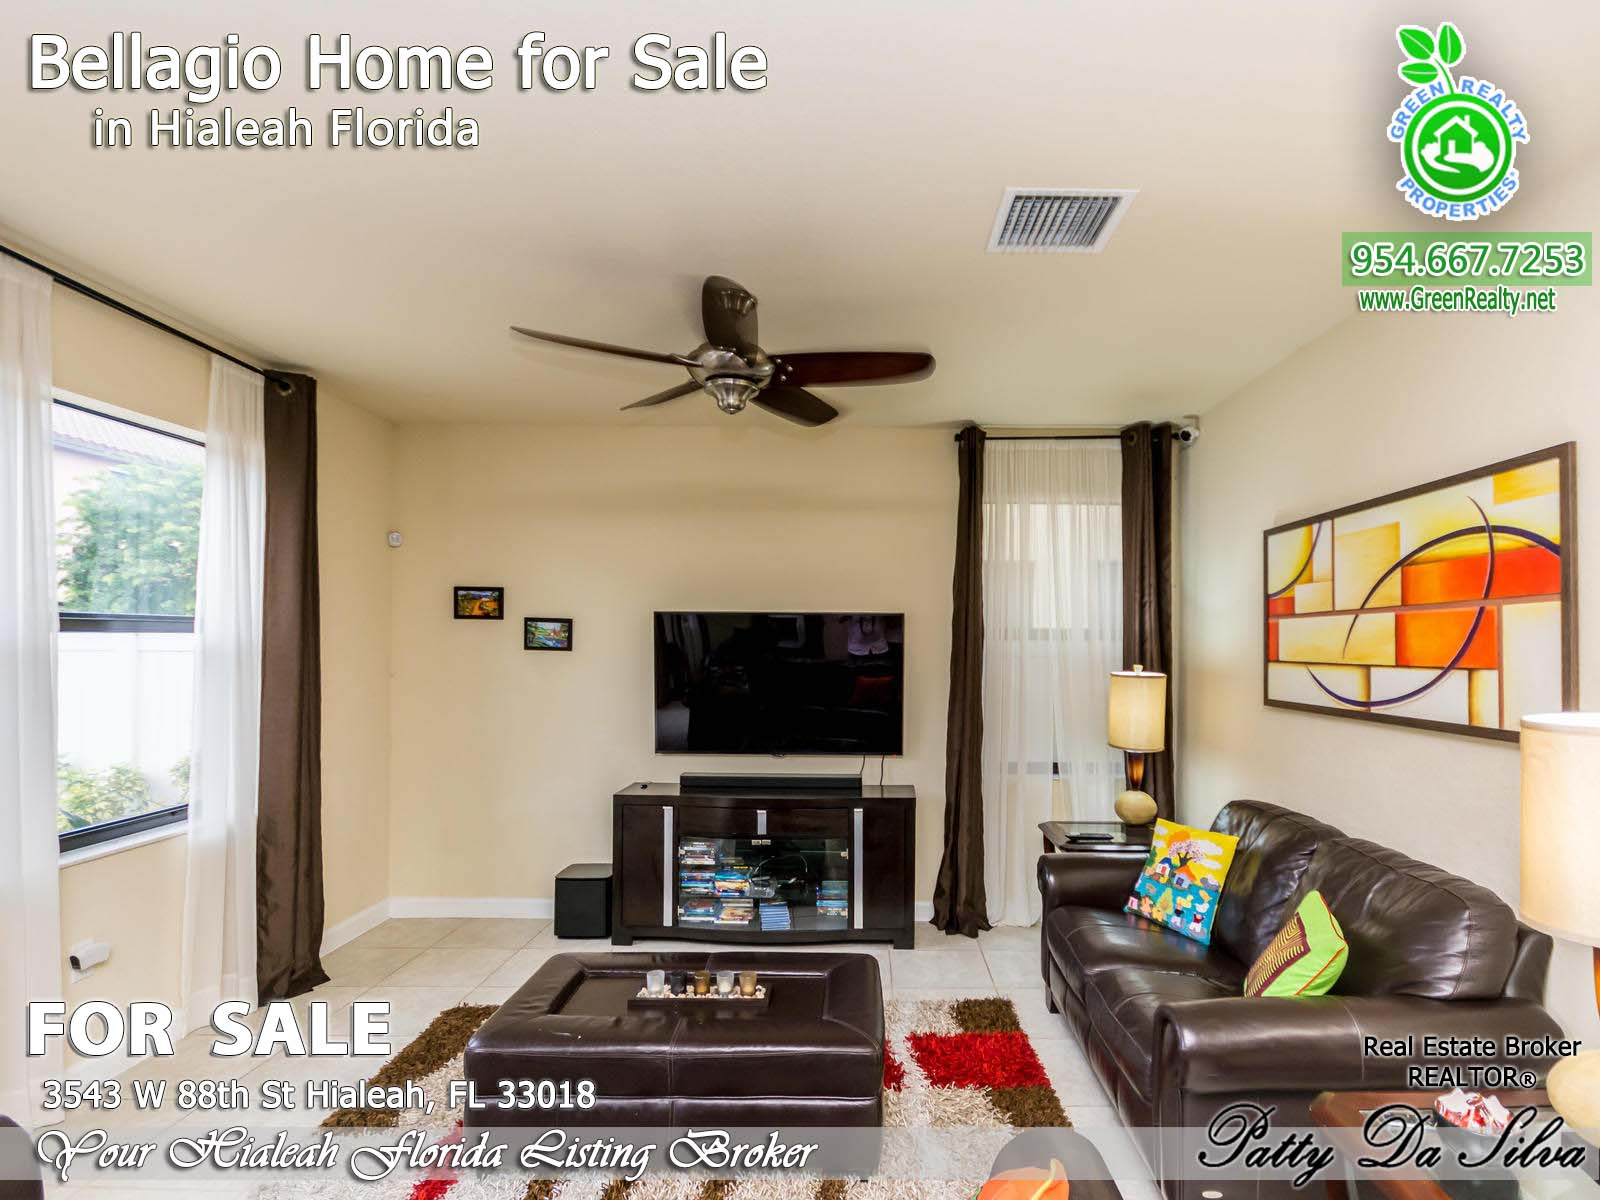 21 Hialeah Florida for sale home green realty properties (19)